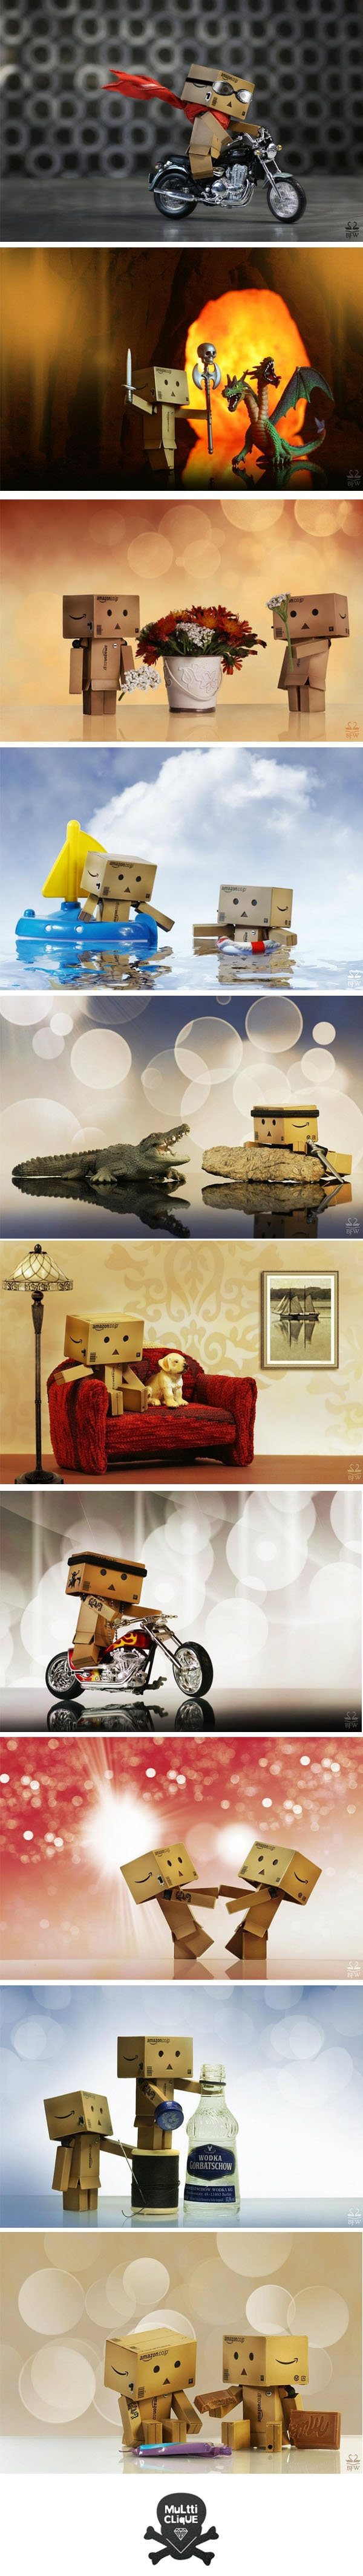 35 Best The Adventures Of Danbo And Domo Images On Pinterest Danbo